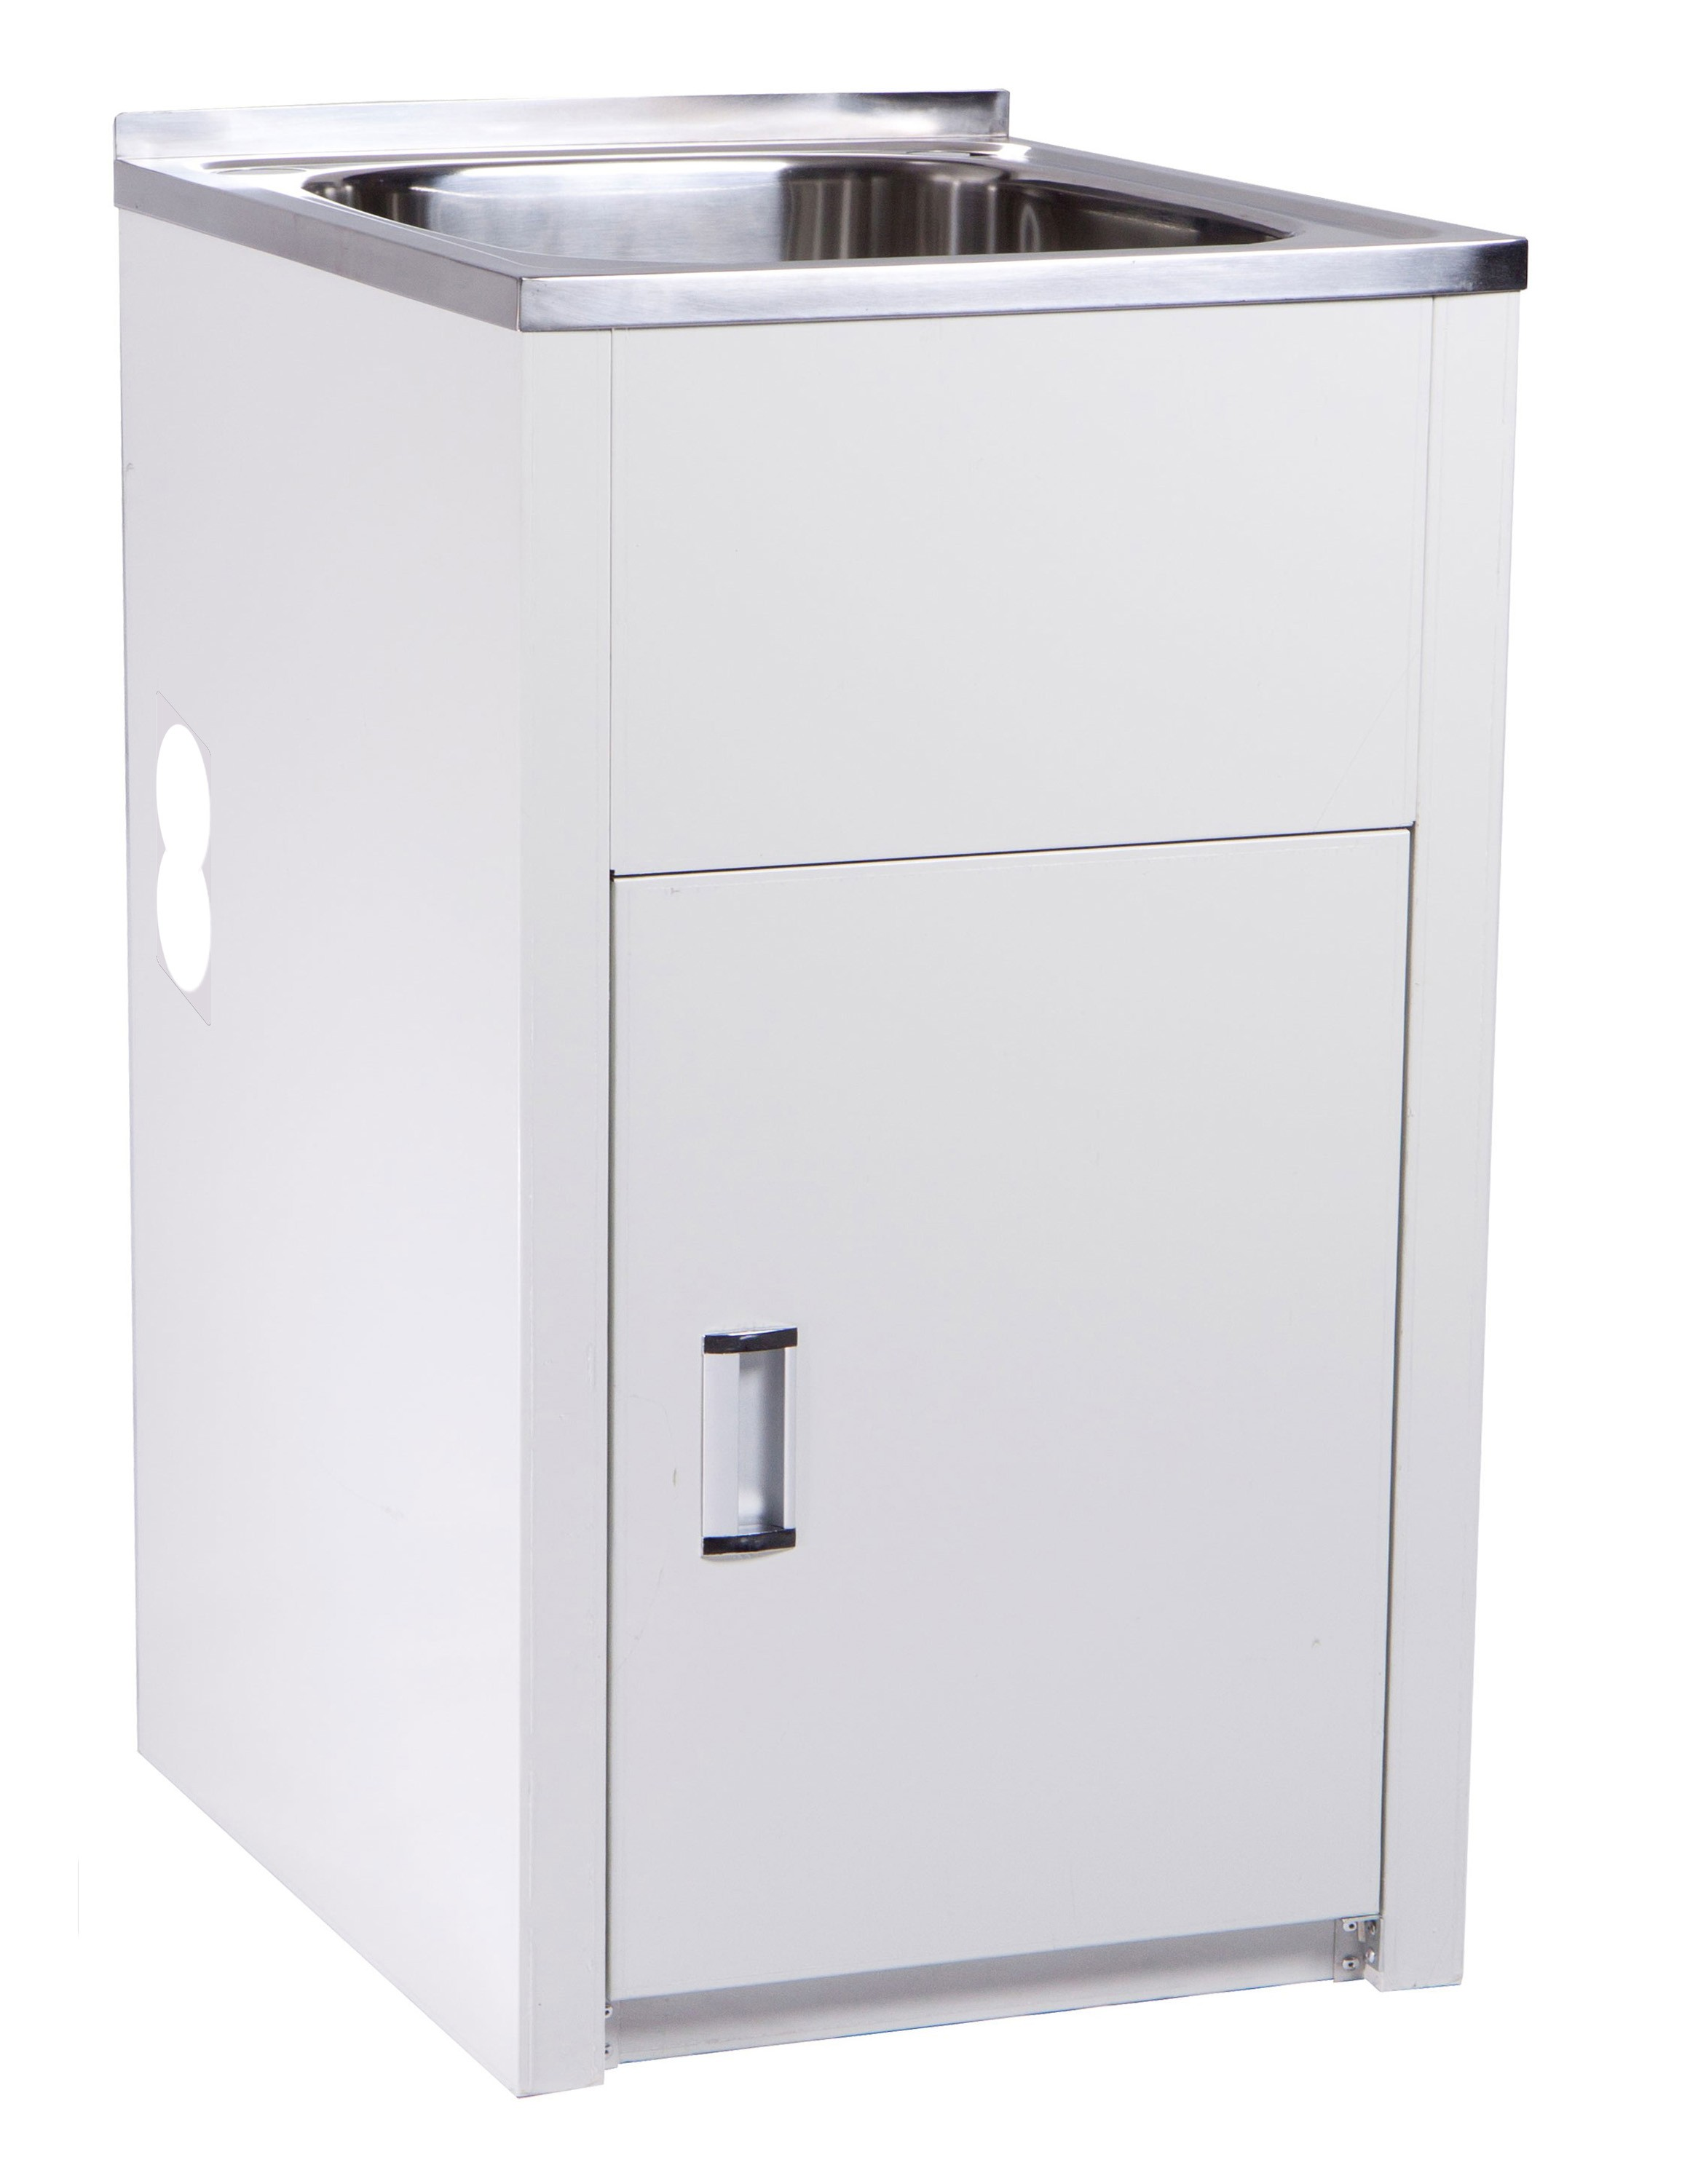 35L COMPACT LAUNDRY TUB & CABINET WITH SIDE HOLE- YH235L-H